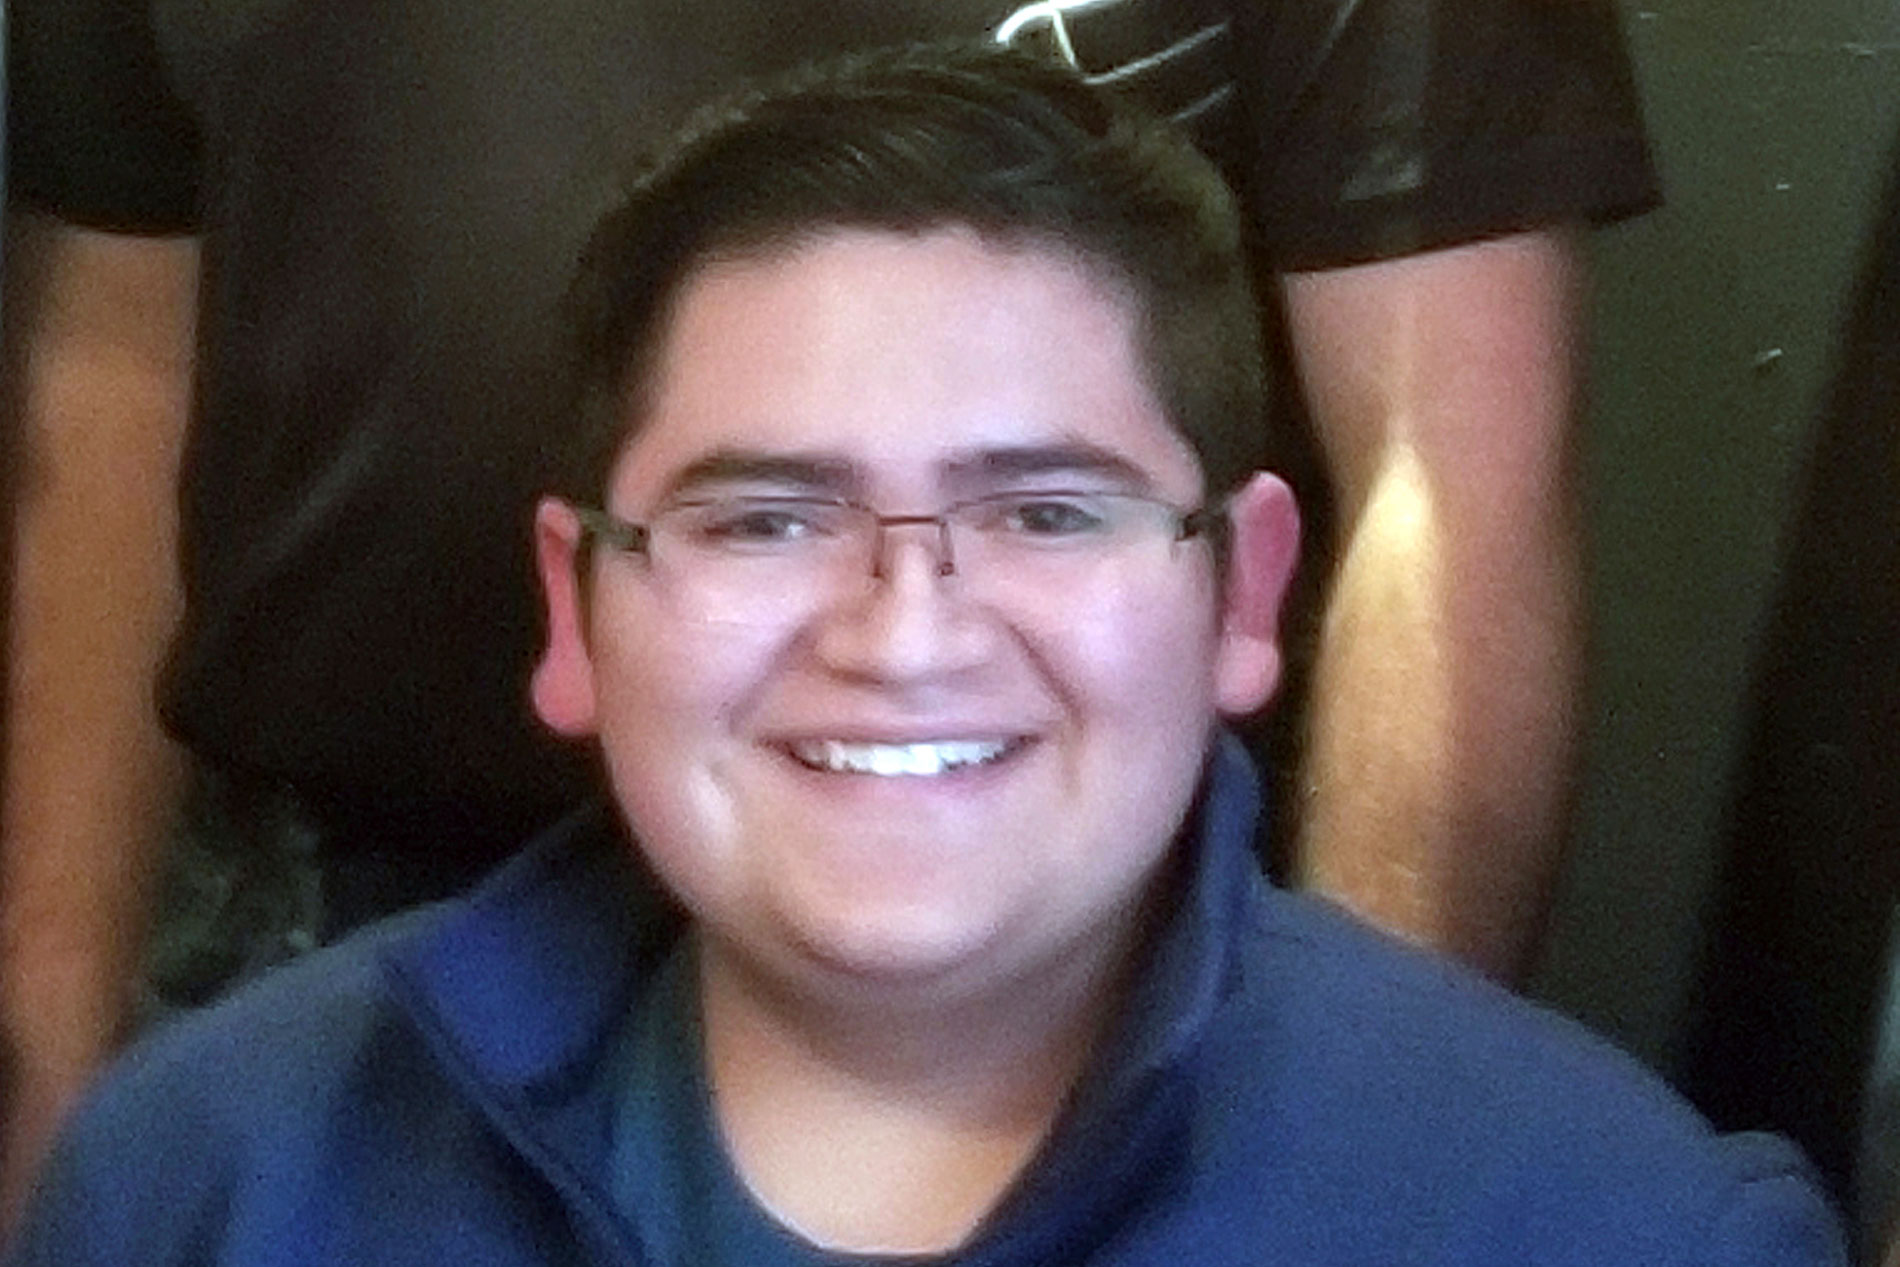 <p>This undated photo provided by Rachel Short shows Kendrick Castillo, who was killed during a shooting at the STEM School Highlands Ranch on Tuesday, May 7, 2019, in Highlands Ranch, Colo.</p>